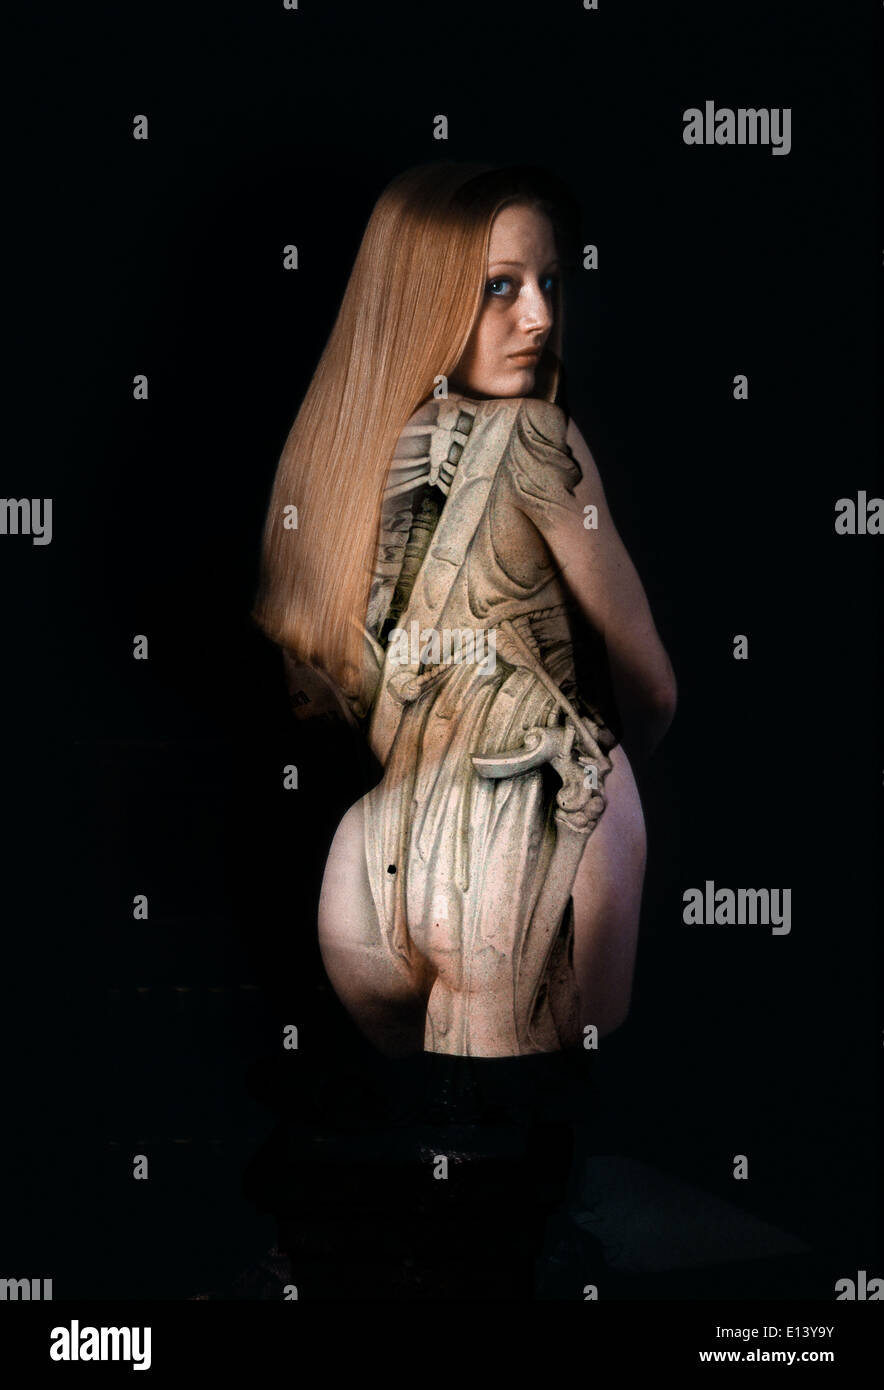 Woman Skeleton Nude 8